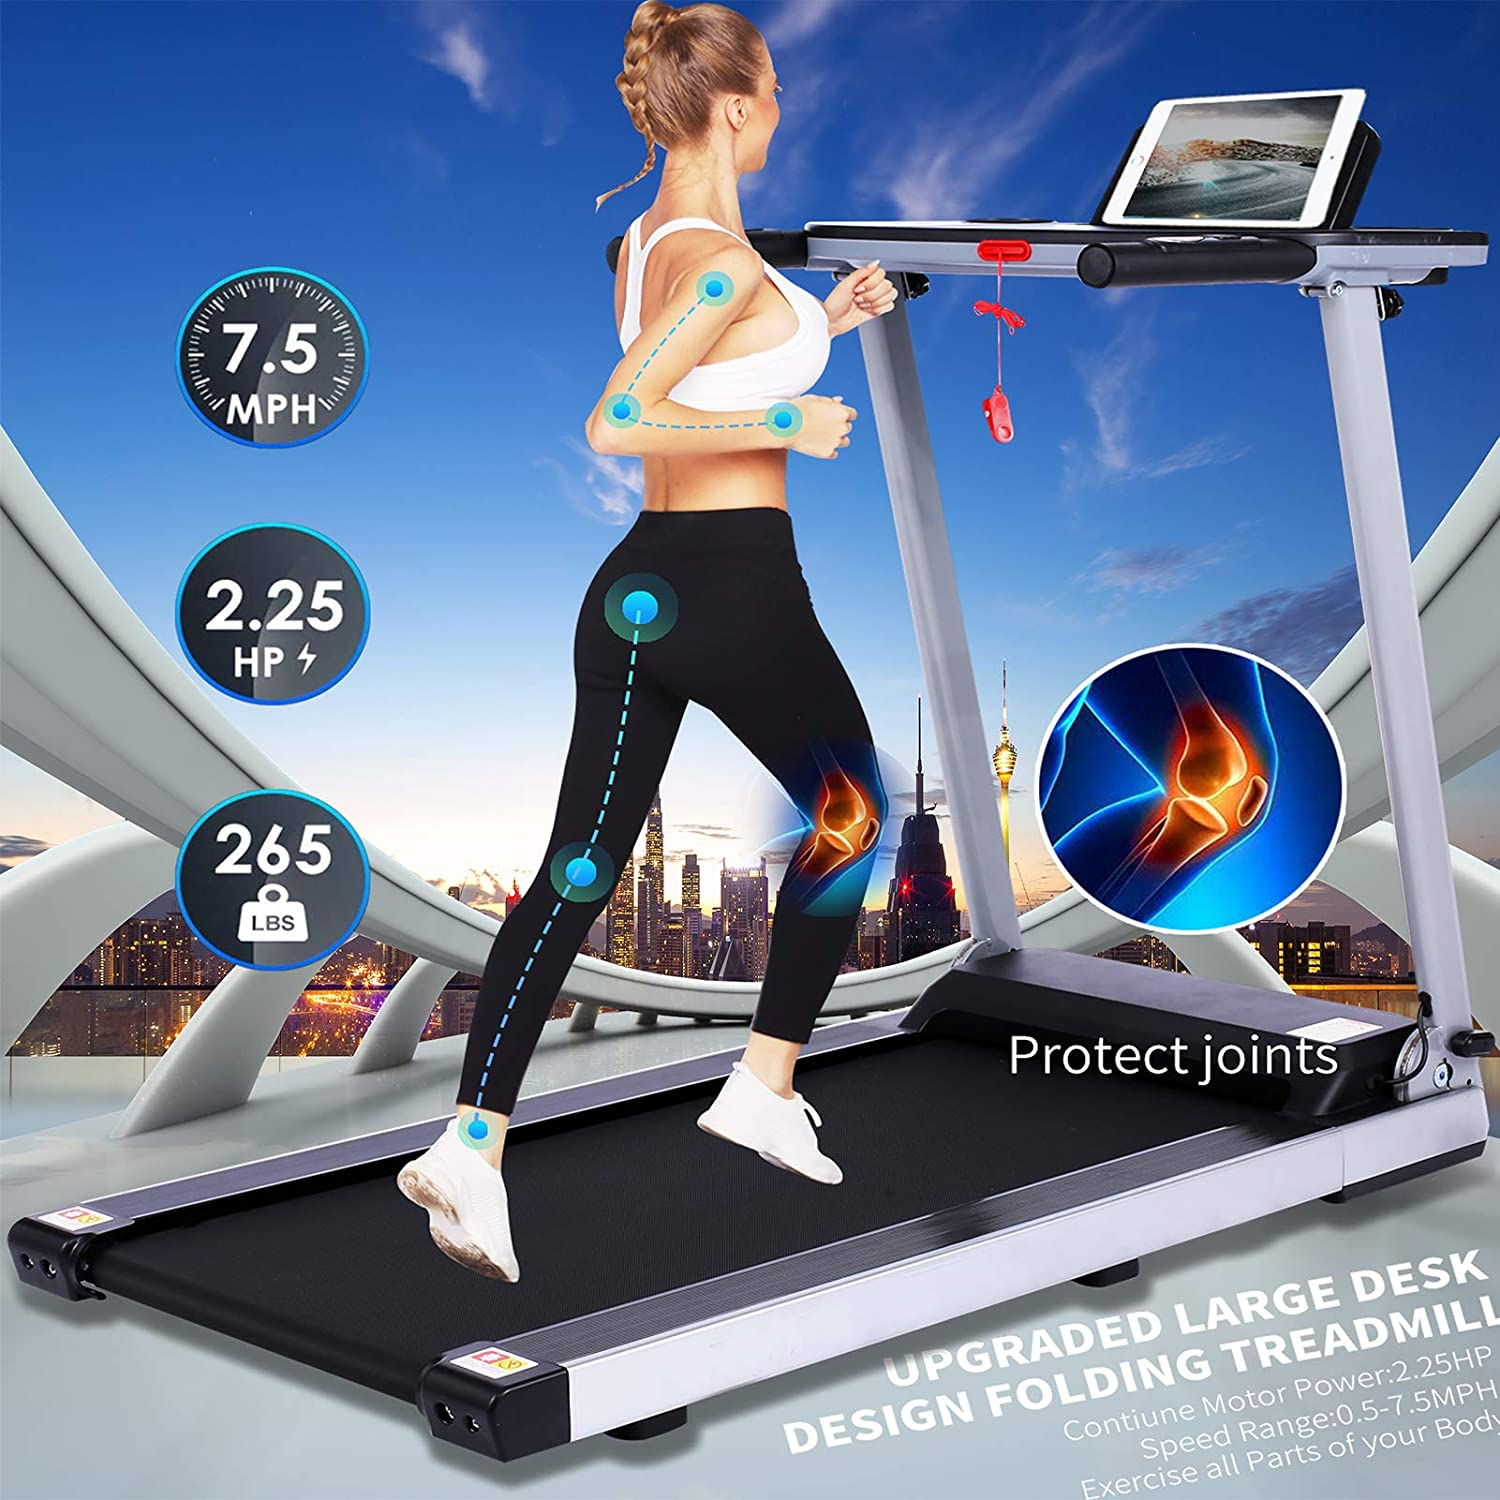 FUNMILY Folding Electric Treadmill,/12 preset Programs Heavy Duty Steel Frame Treadmills with Large Desk,//Best 2.25HP Exercise Jogging Walking Running Machine for Home Gym Office Workout